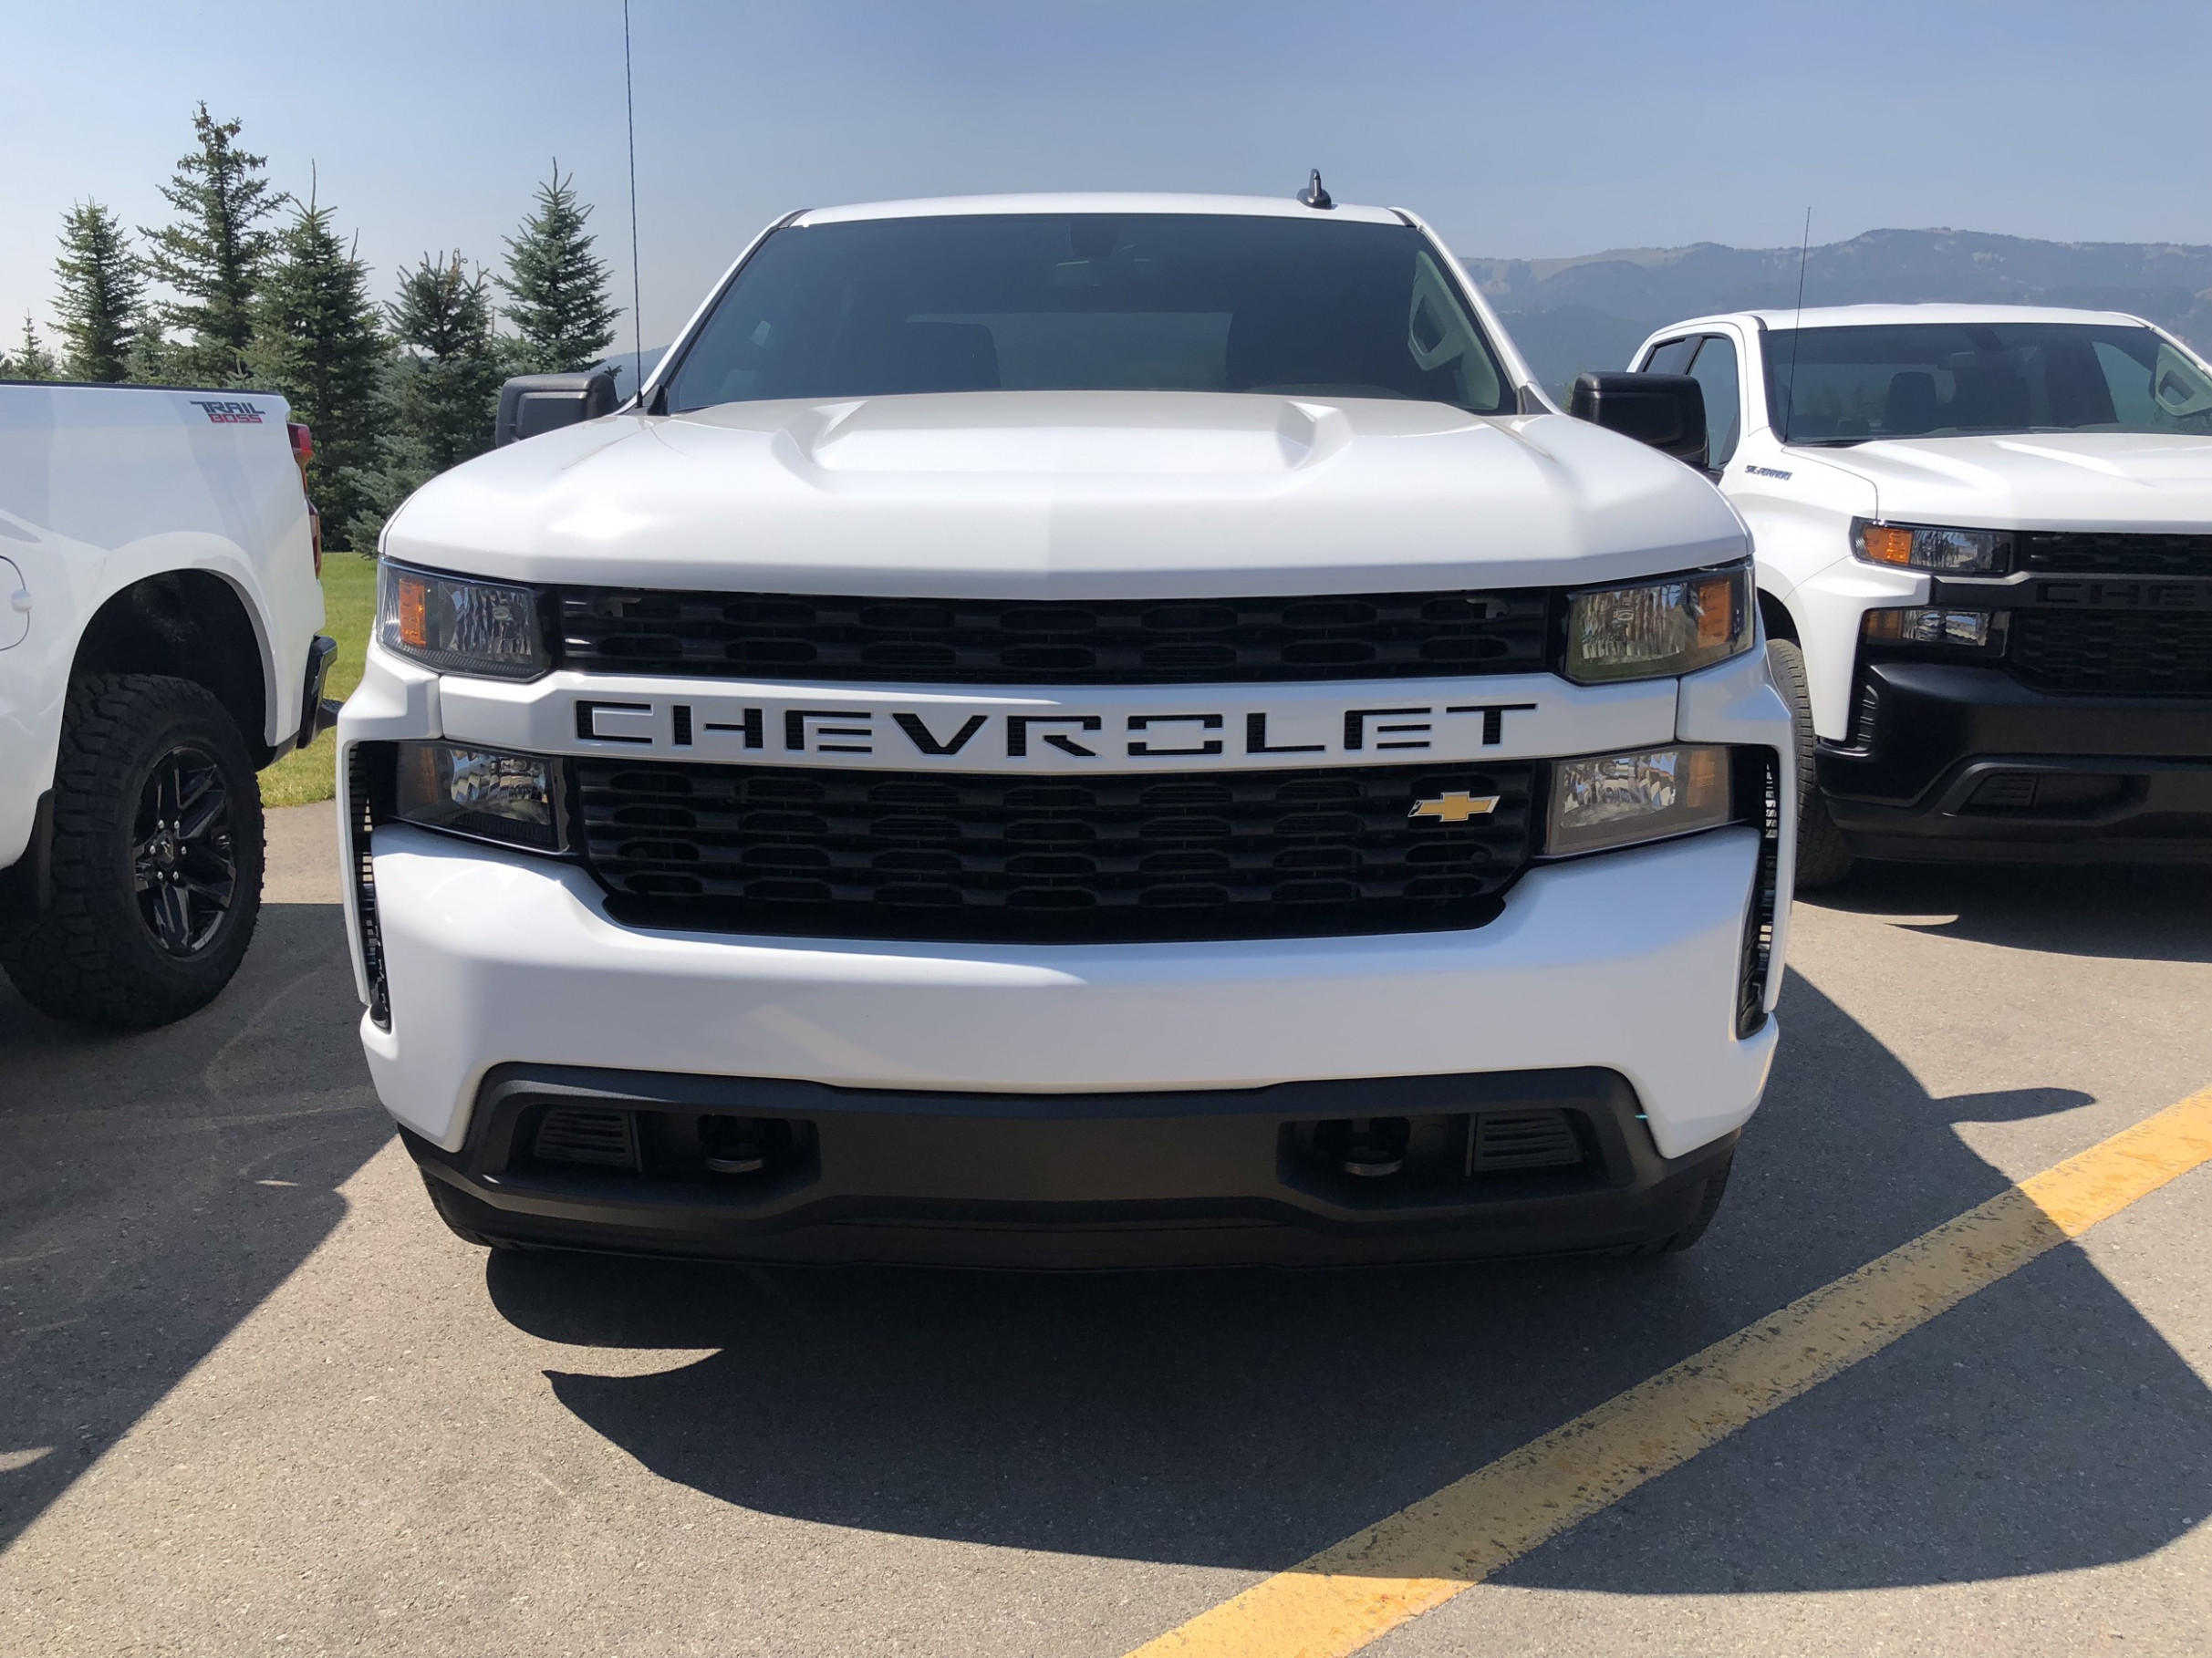 7 Chevrolet Silverado 7 Info, Specs, Wiki | GM Authority - 2020 chevrolet z71